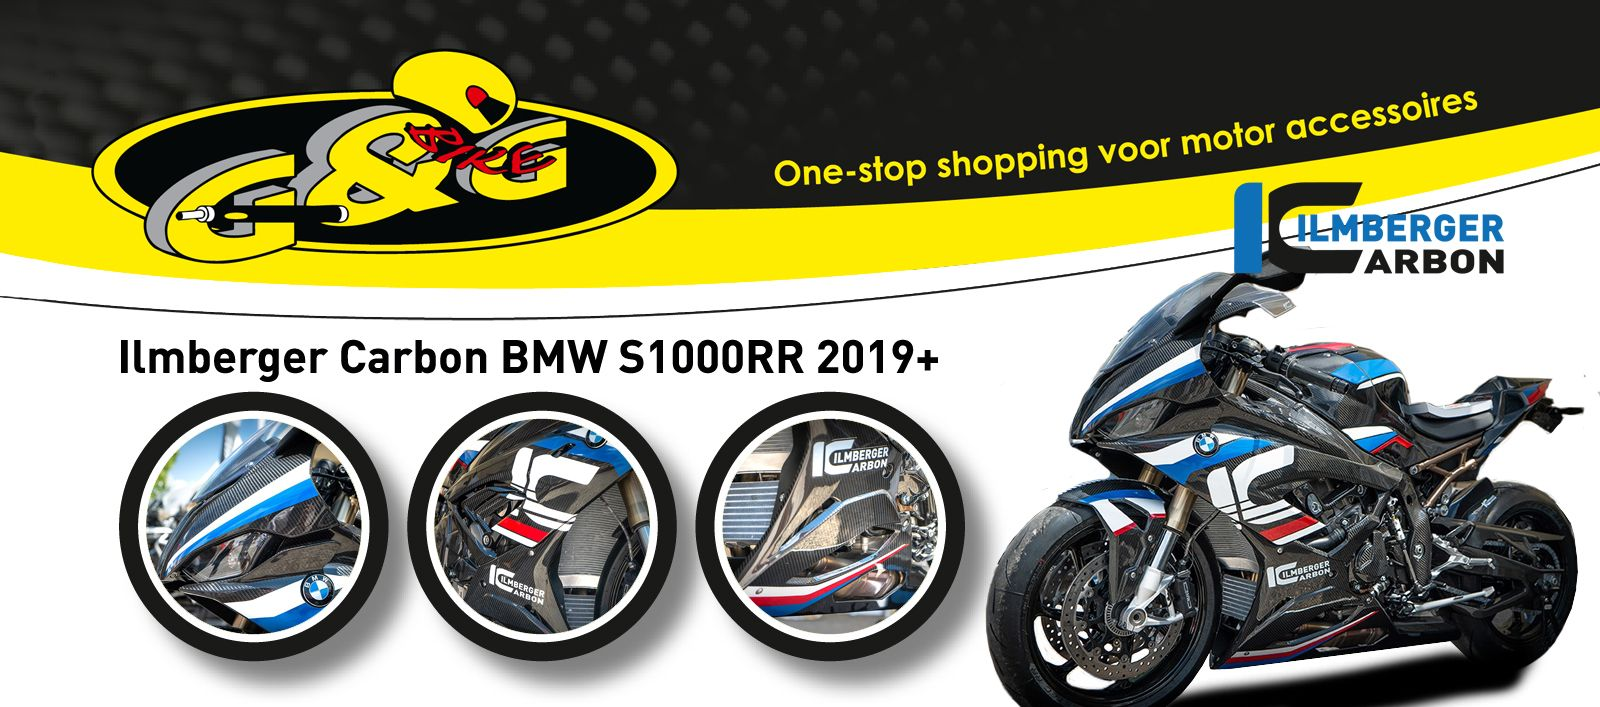 Ilmberger Carbon accessories BMW S1000RR 2019+